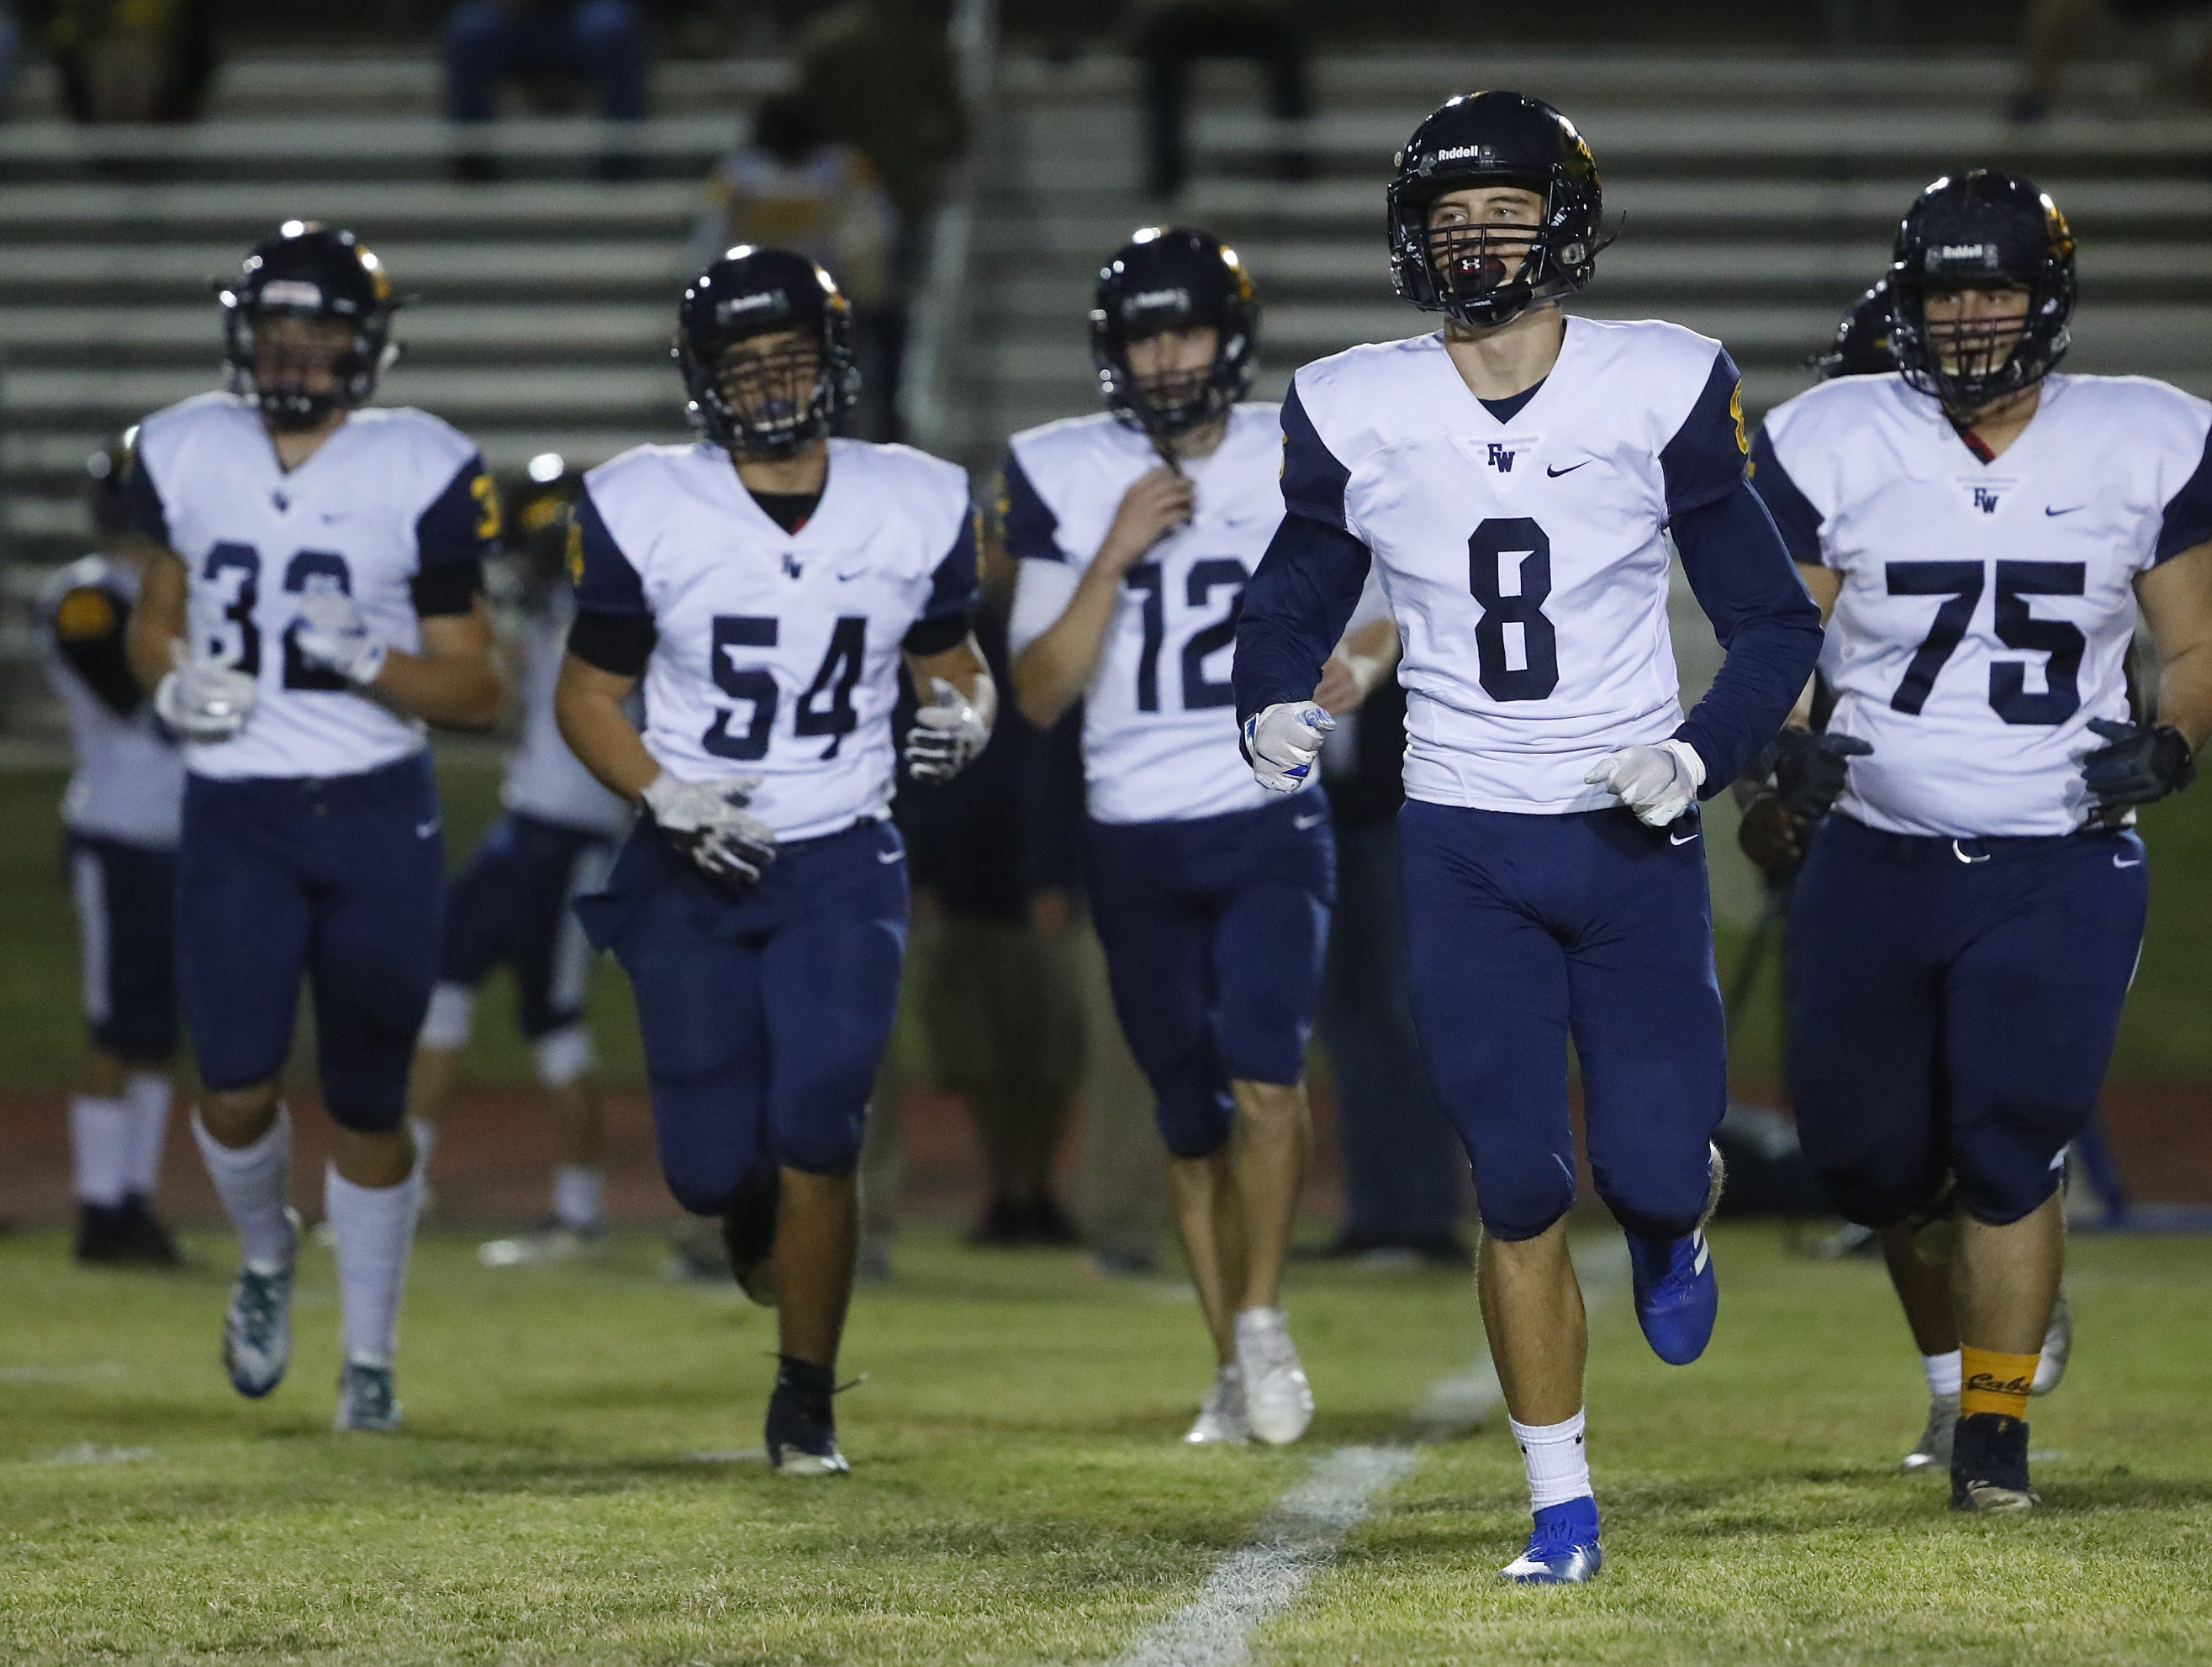 Flowing Wells' Lloyd Love (8) and his teammates take the field to play Millennium during the first round of the AIA State Football Playoffs at Millennium High School in Goodyear, Ariz. on Nov. 2, 2018.